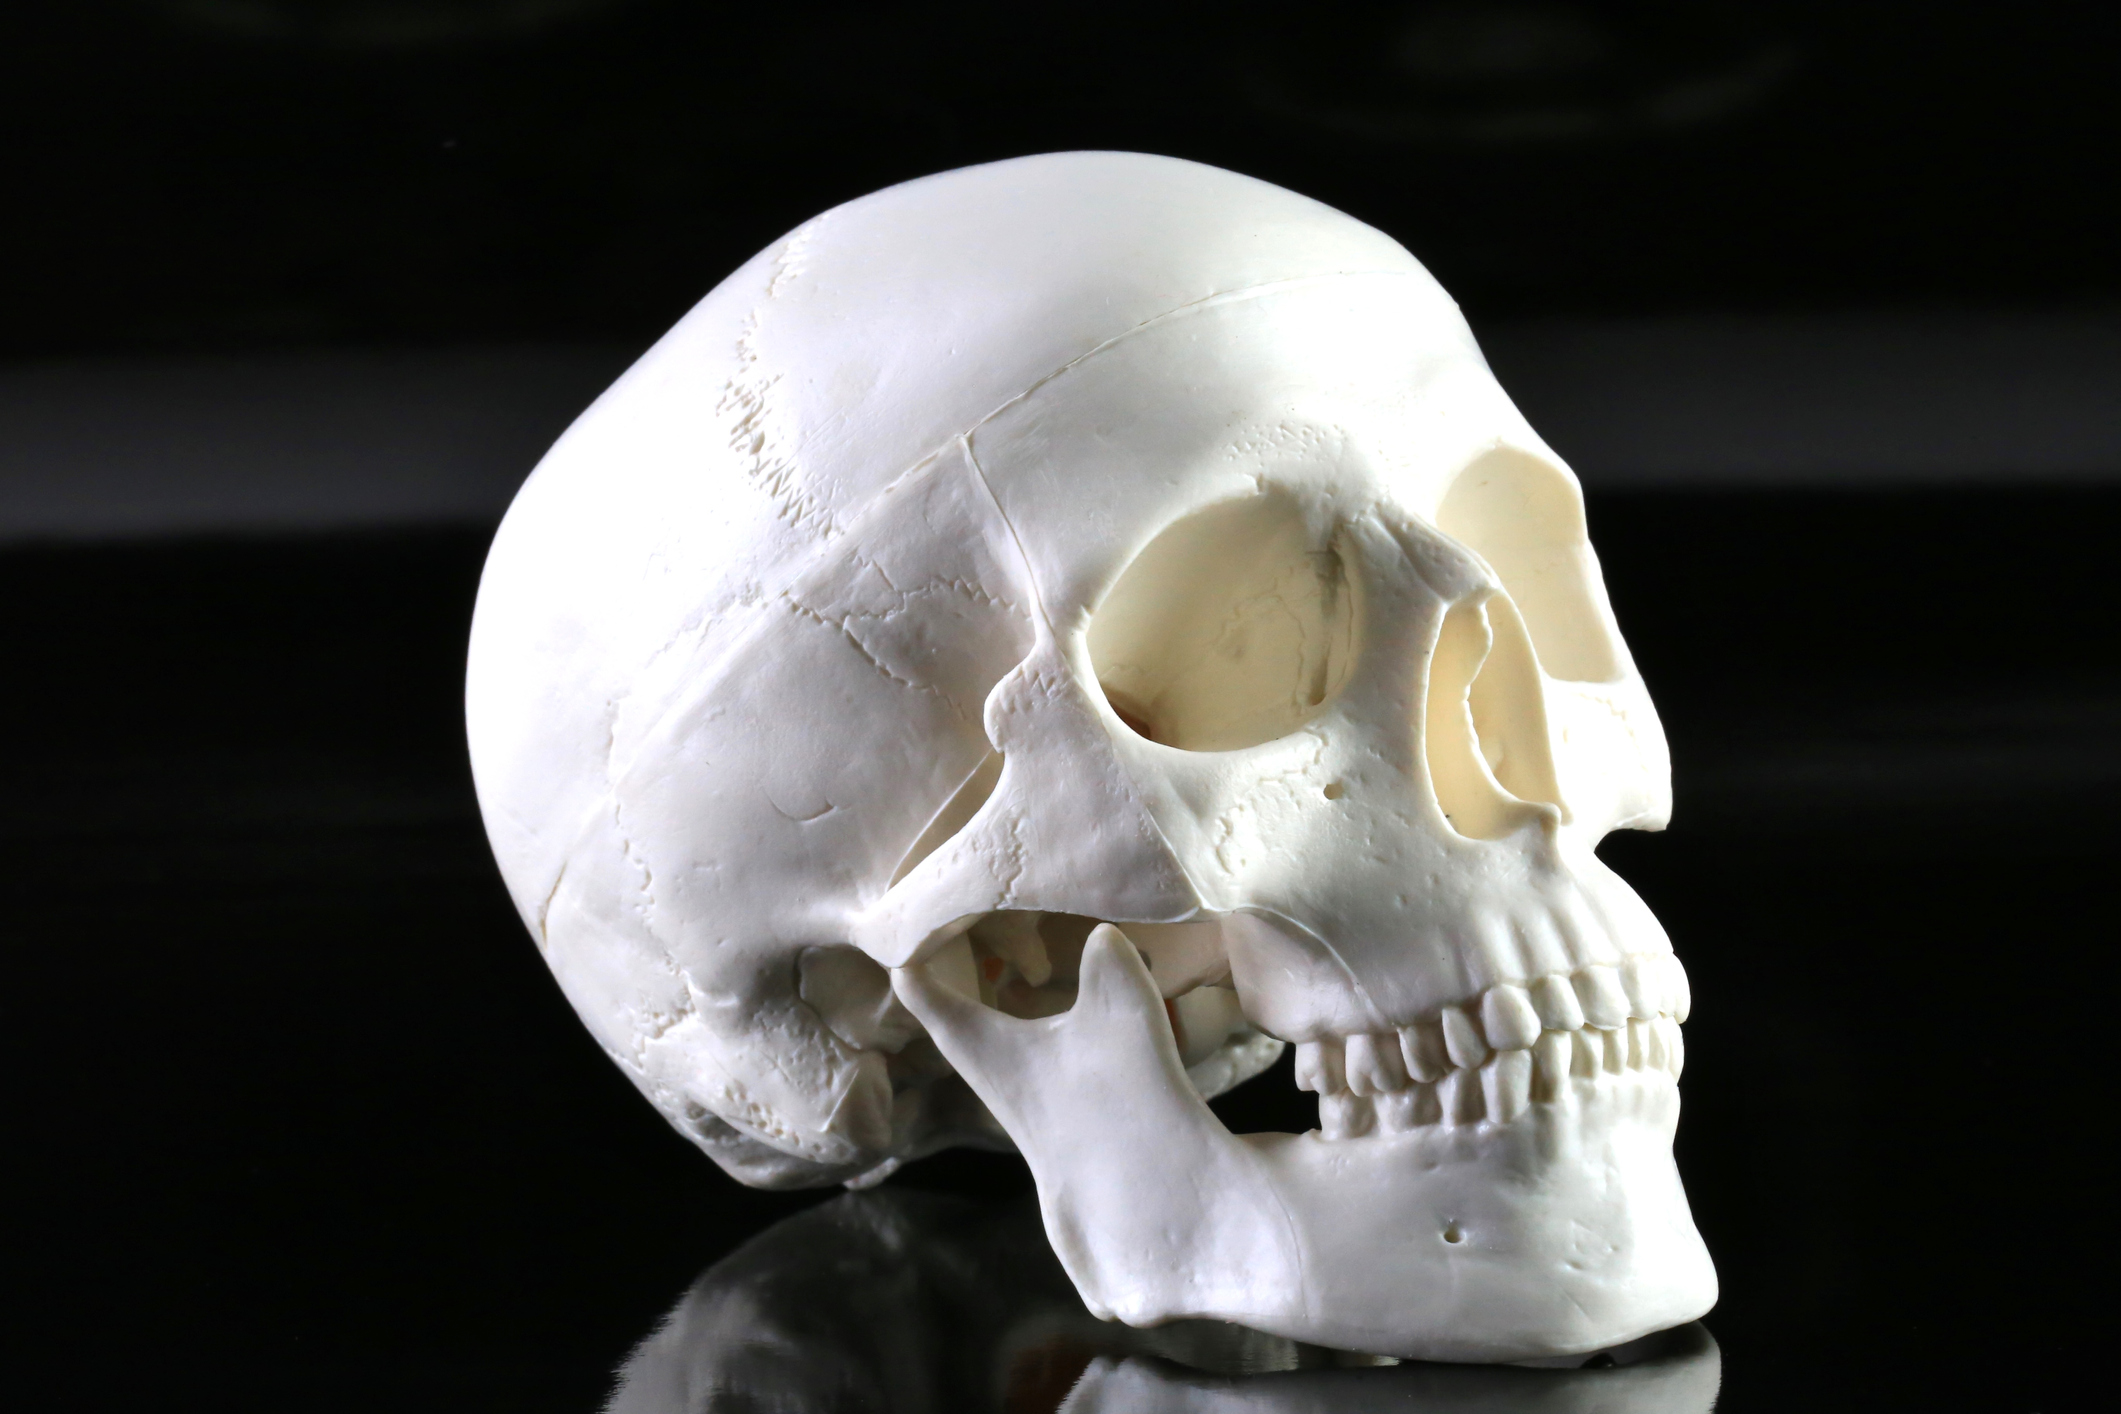 Human Skull Model on a black background